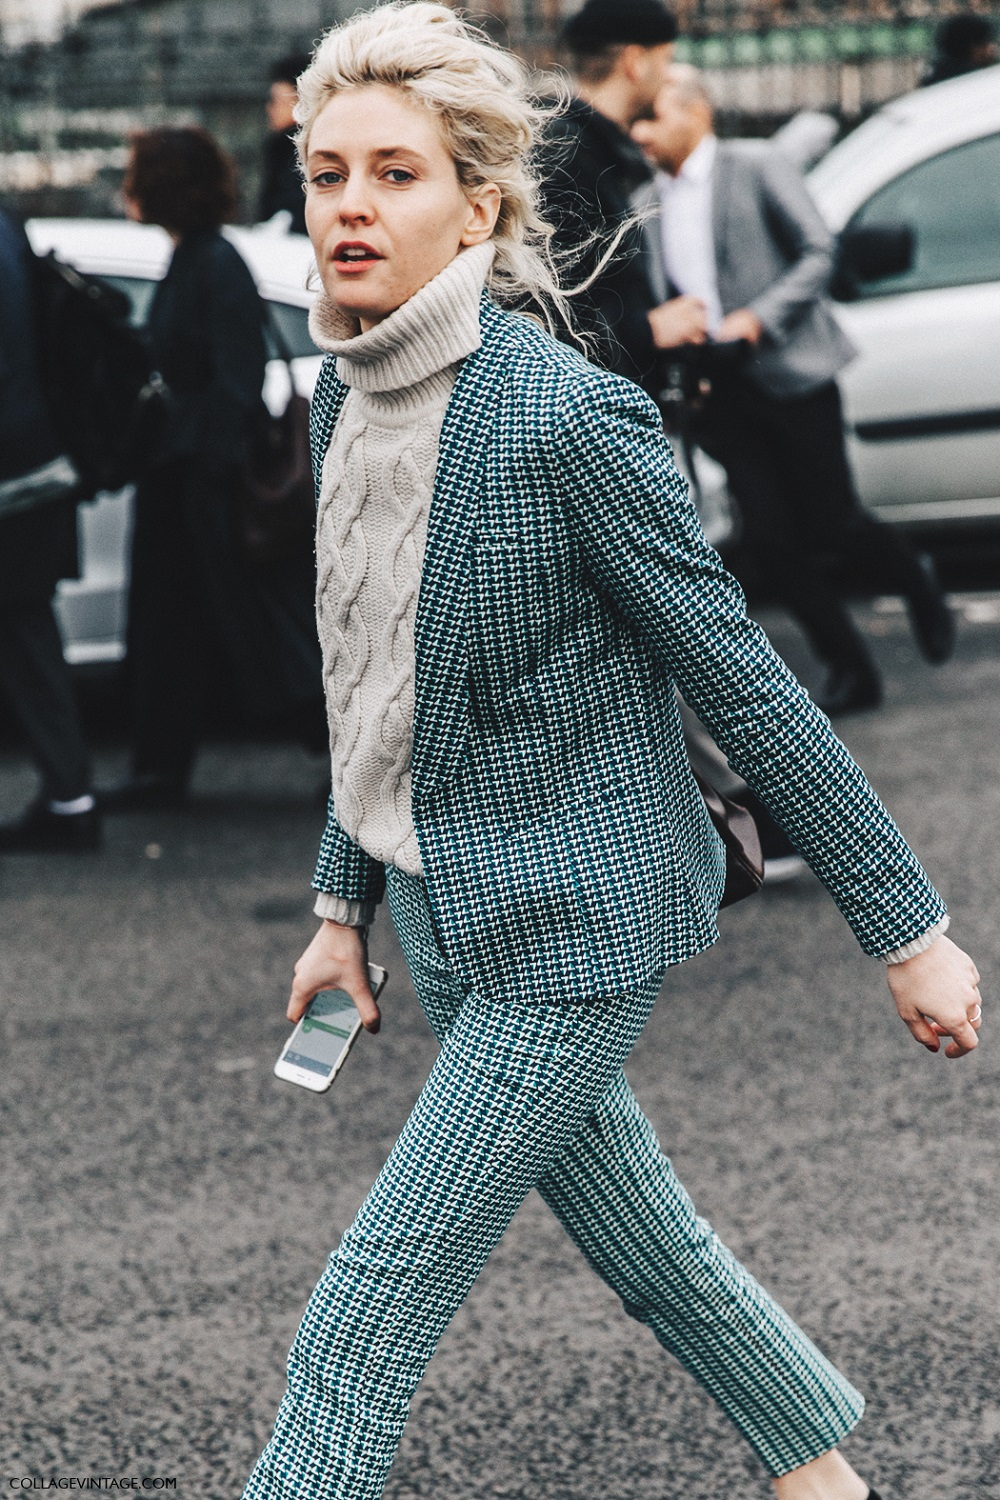 PFW Paris Fashion Week Fall 2016 Street Style Collage Vintage Matchy Matchy